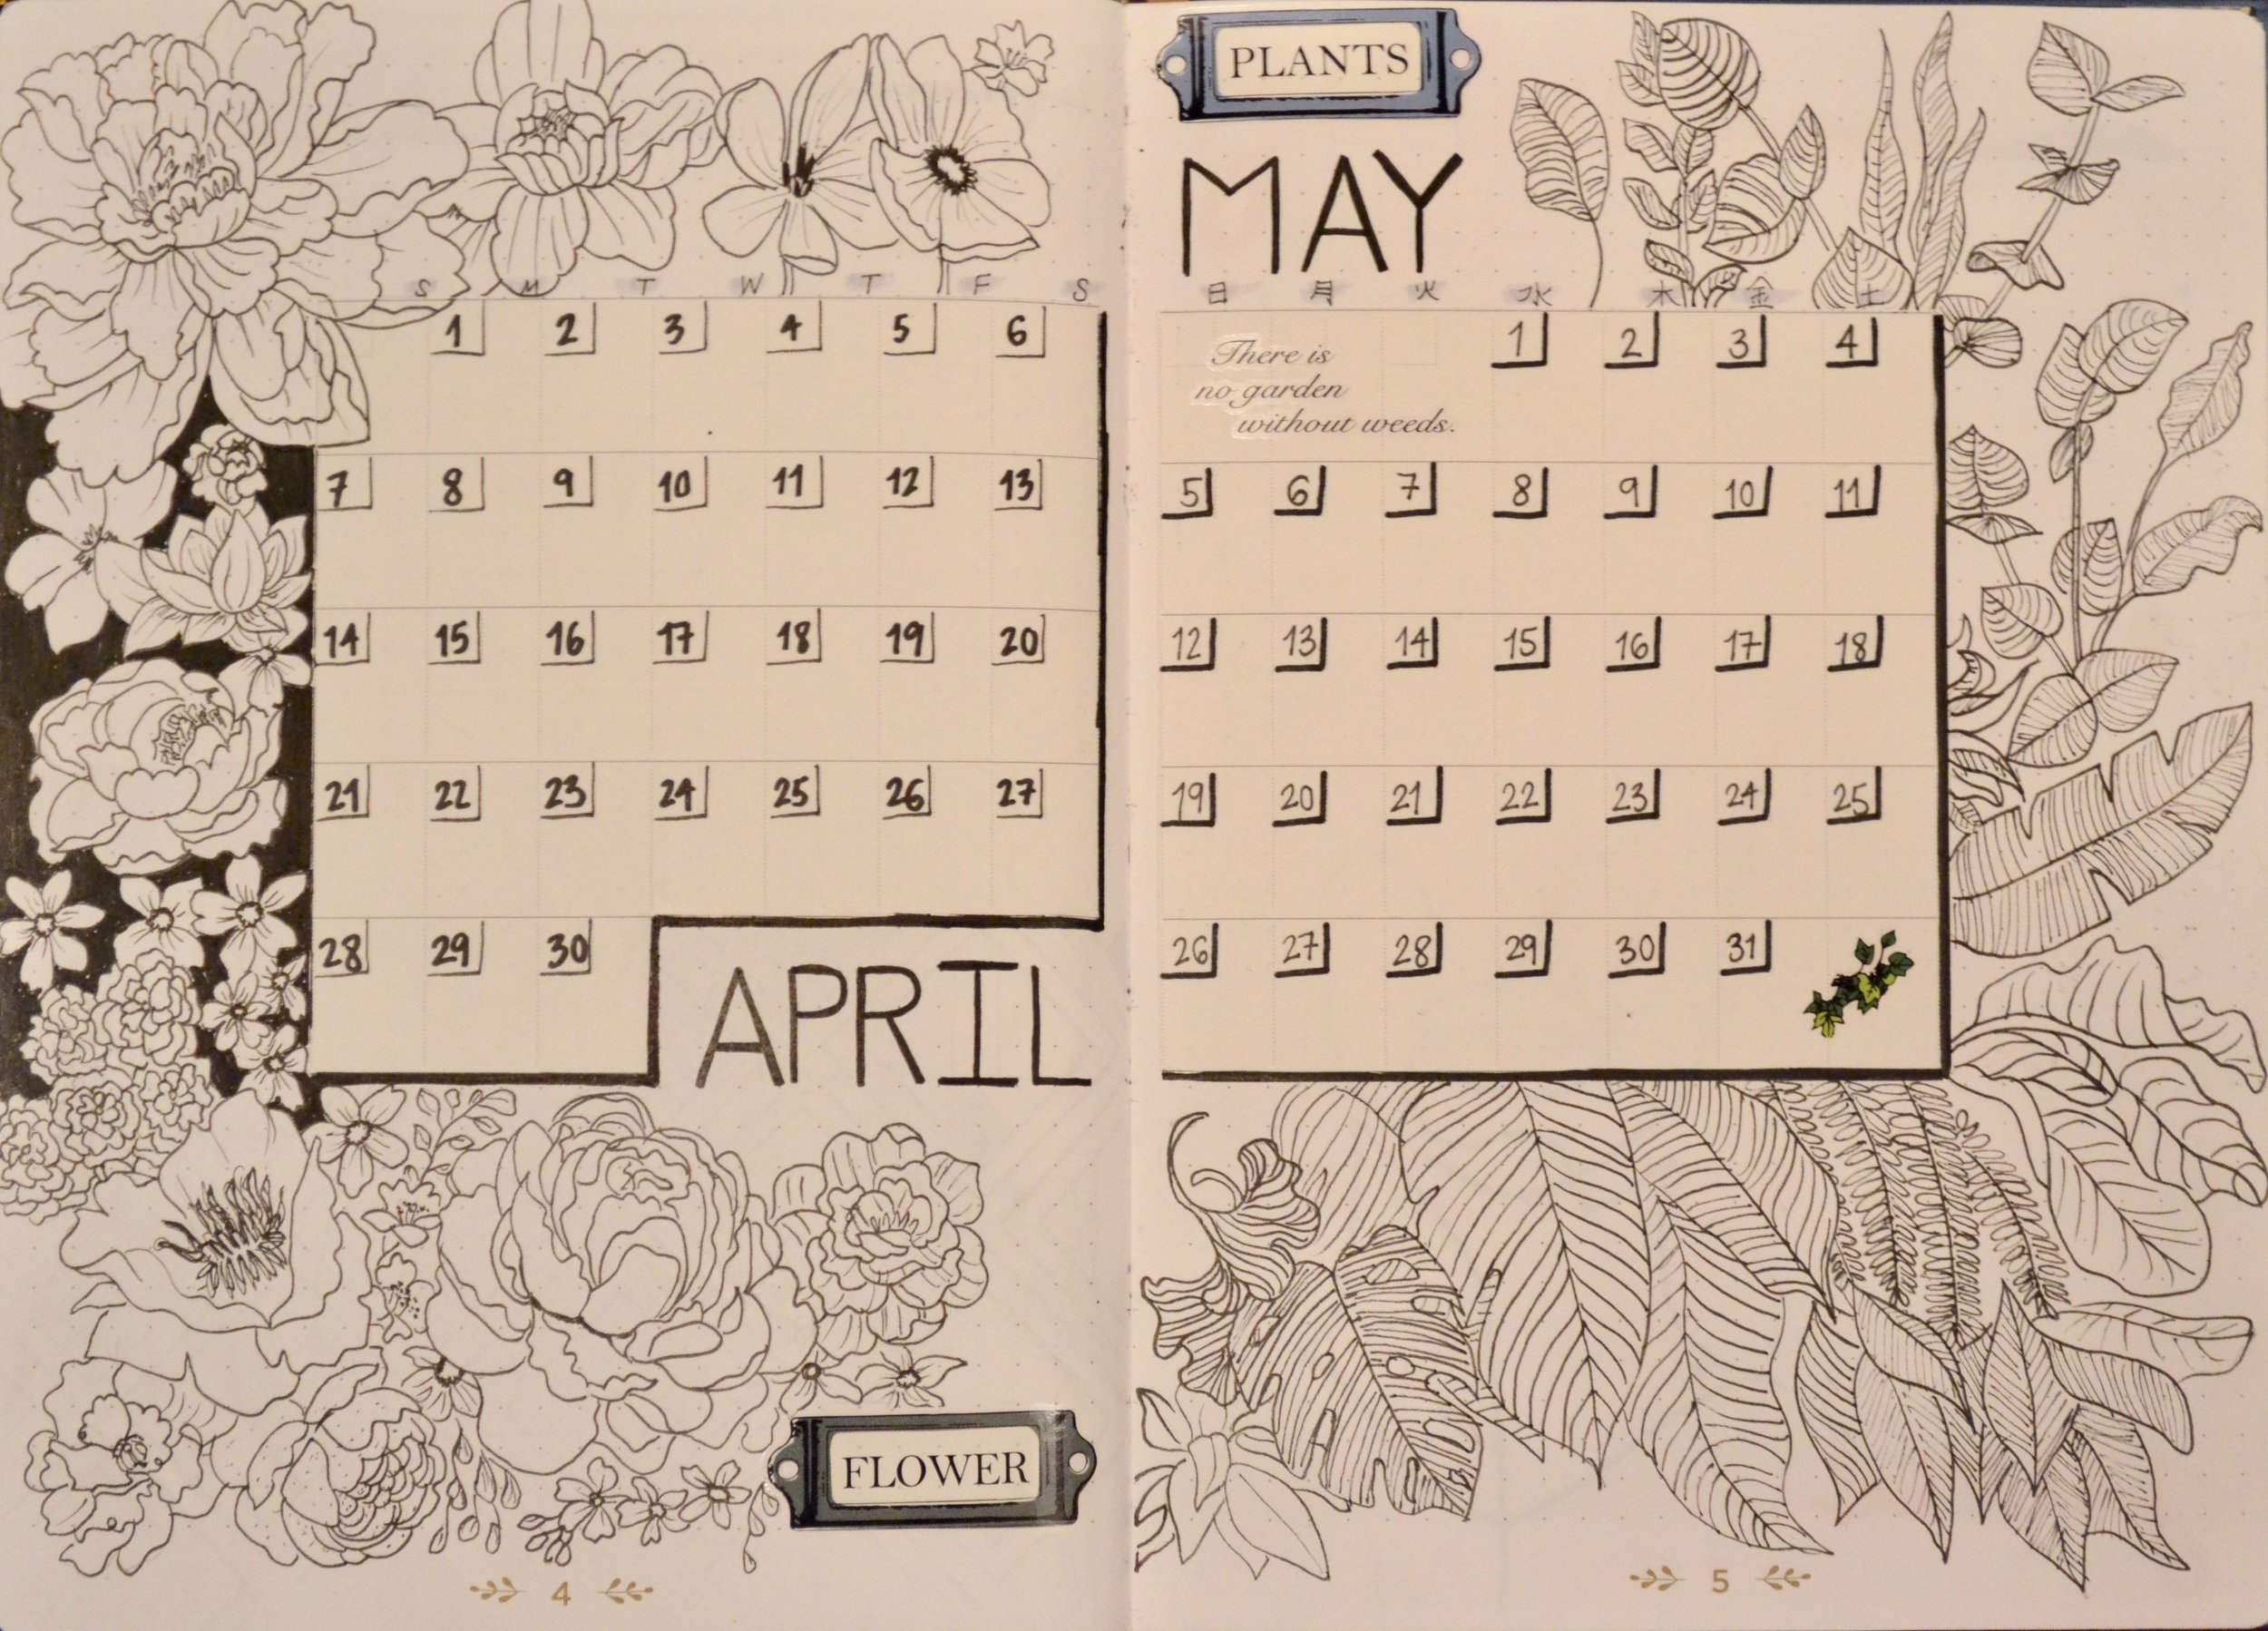 One of my favorite monthly spreads! I like to have these month pages in order to be better organized and I can write down the things I have to do and planning for over a long period of time.